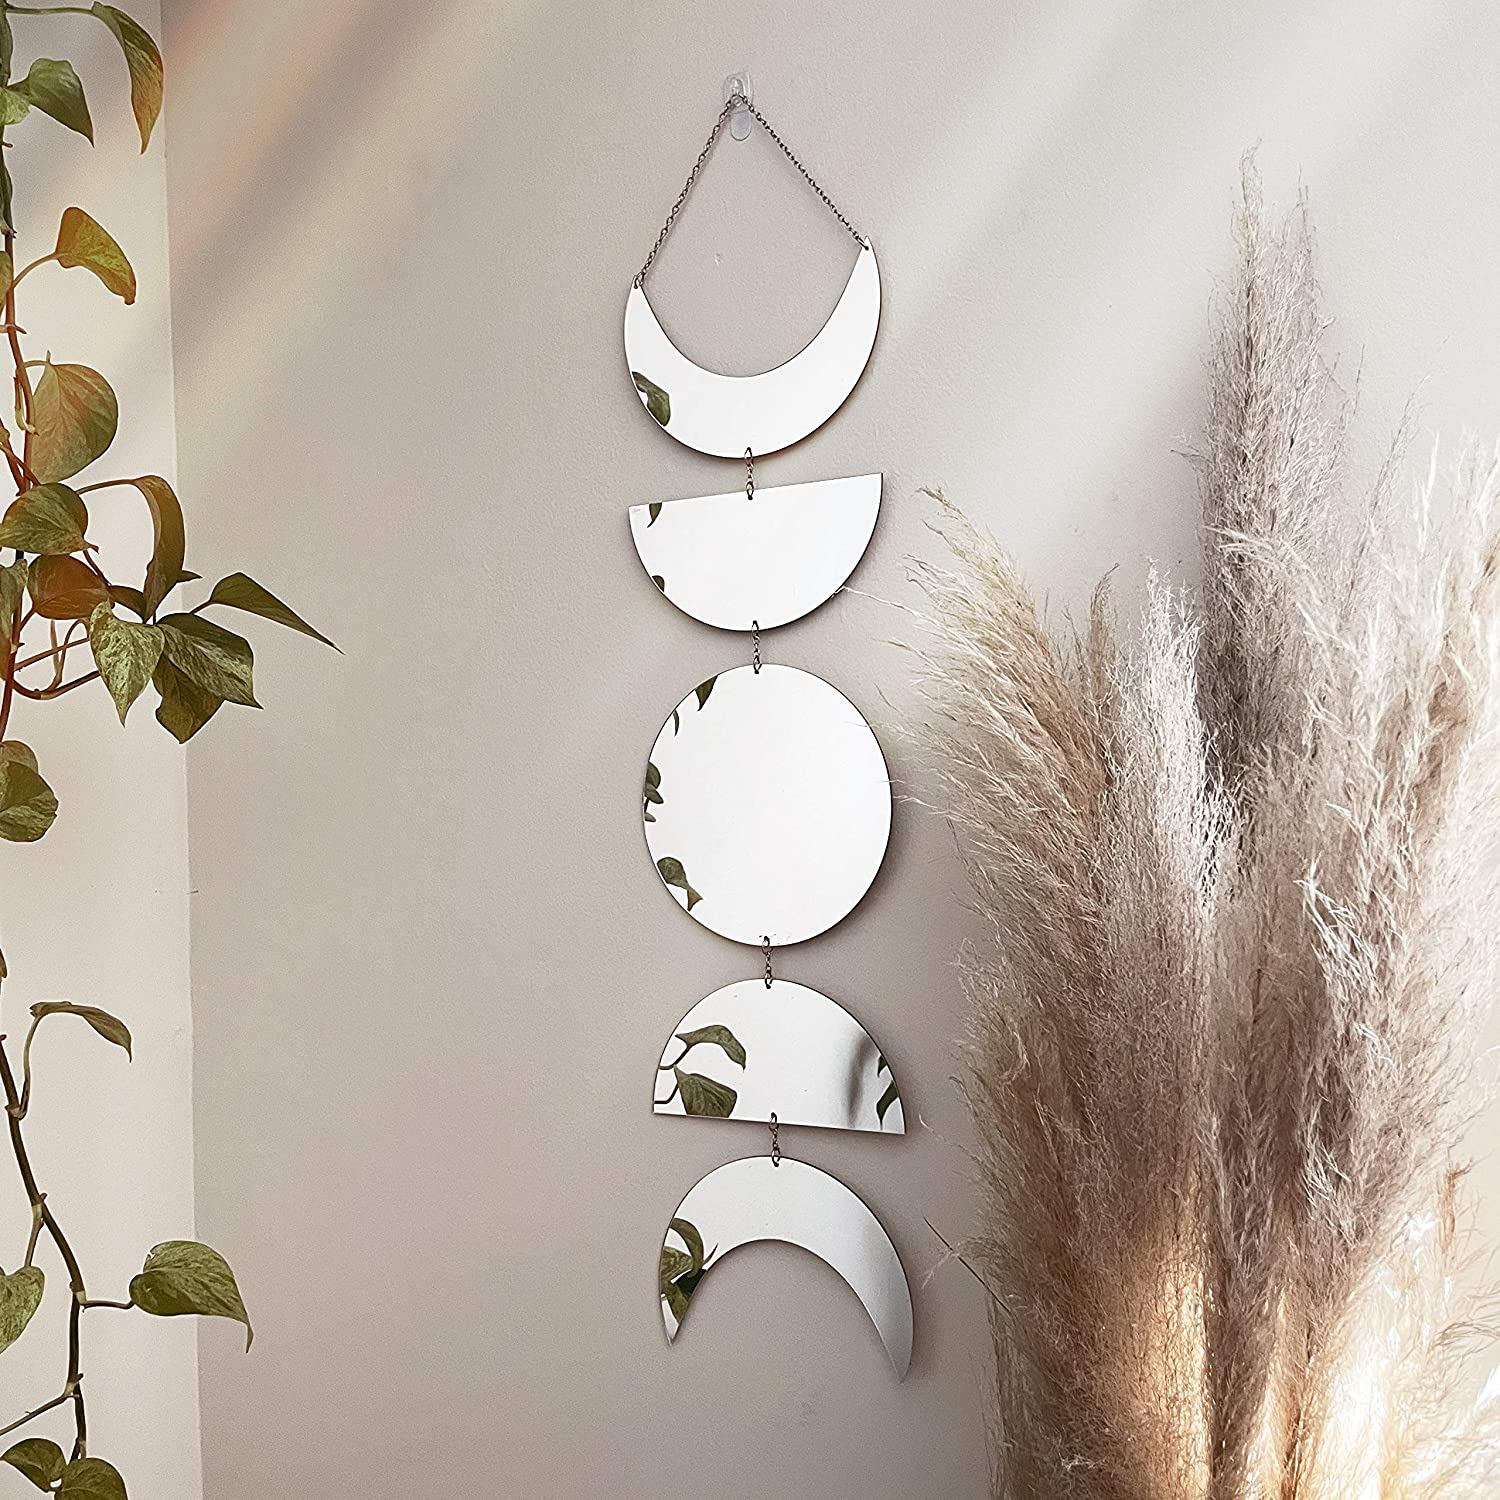 Moon Wall Decor   Decorative Moon Phase Mirror Boho Wall Hanging Mirror Bohemian Decor for Bedroom   Aesthetic Mirror Decorations for Living Room Moon Phases Art   Acrylic   Silver or Gold Wall Decor